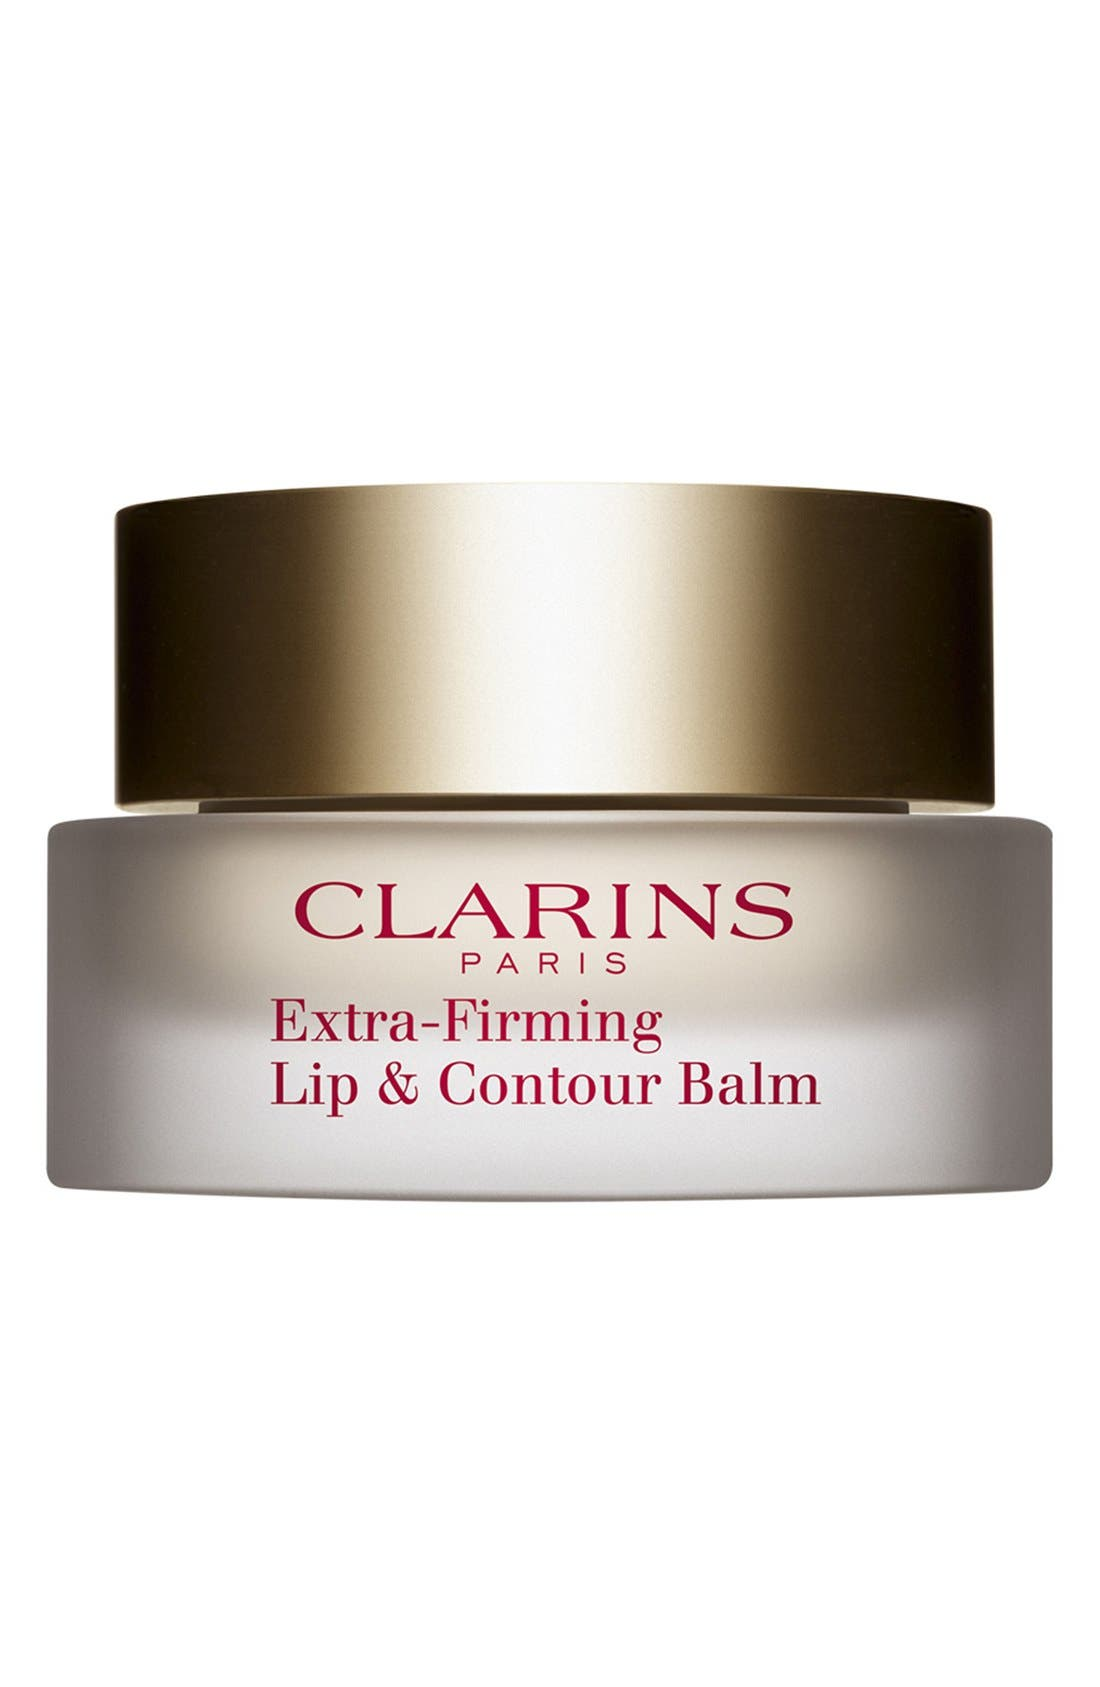 CLARINS, Extra-Firming Lip & Contour Balm, Main thumbnail 1, color, NO COLOR